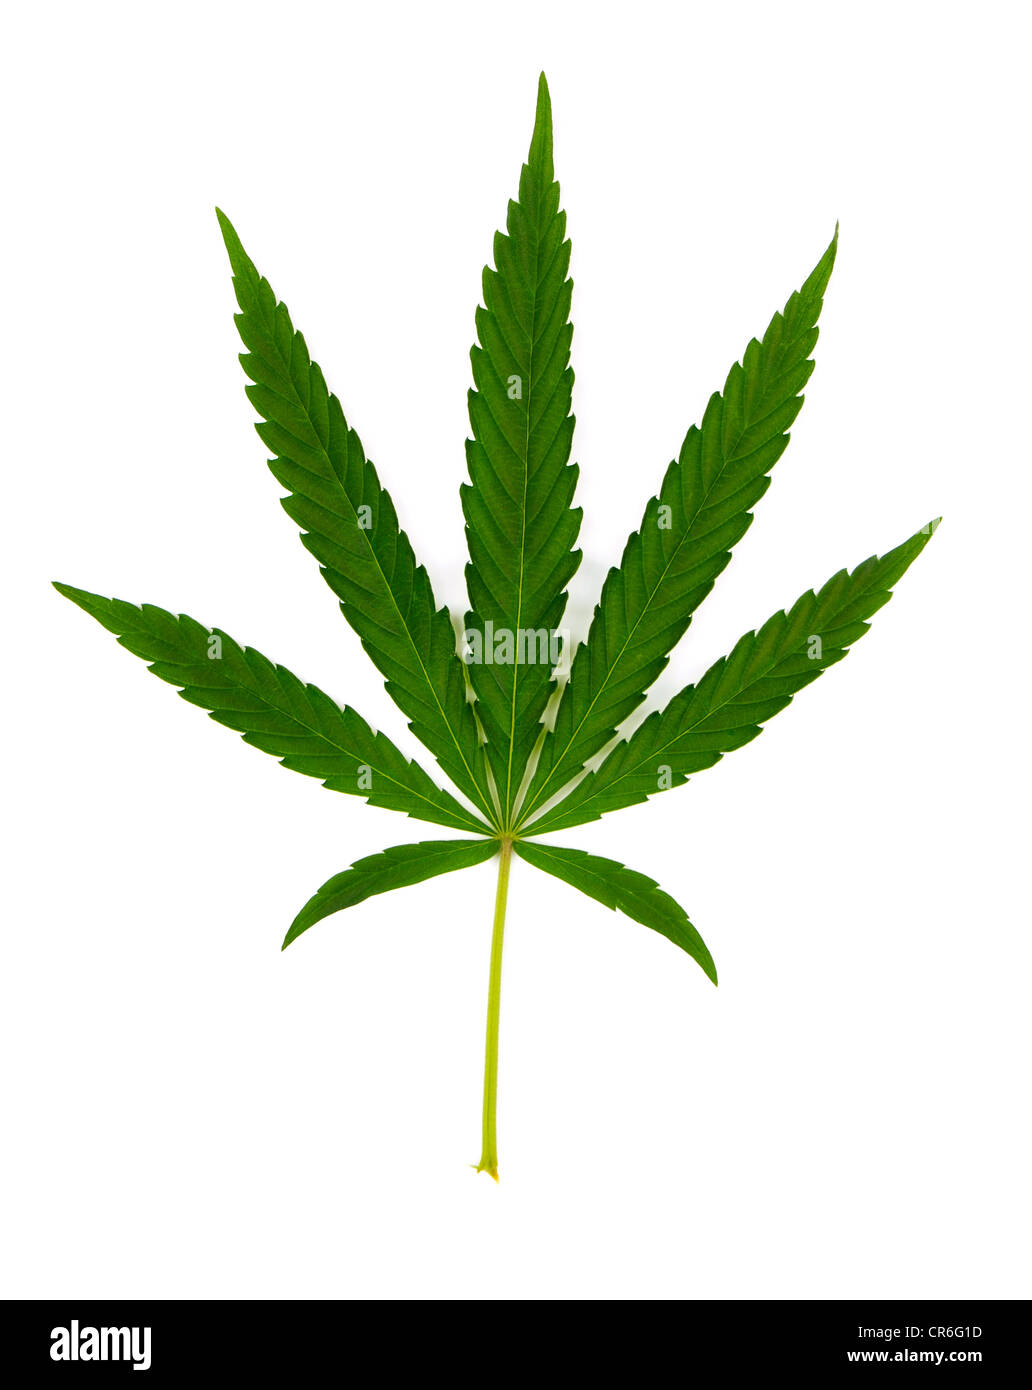 Green leaf of hemp (cannabis) isolated on white - Stock Image